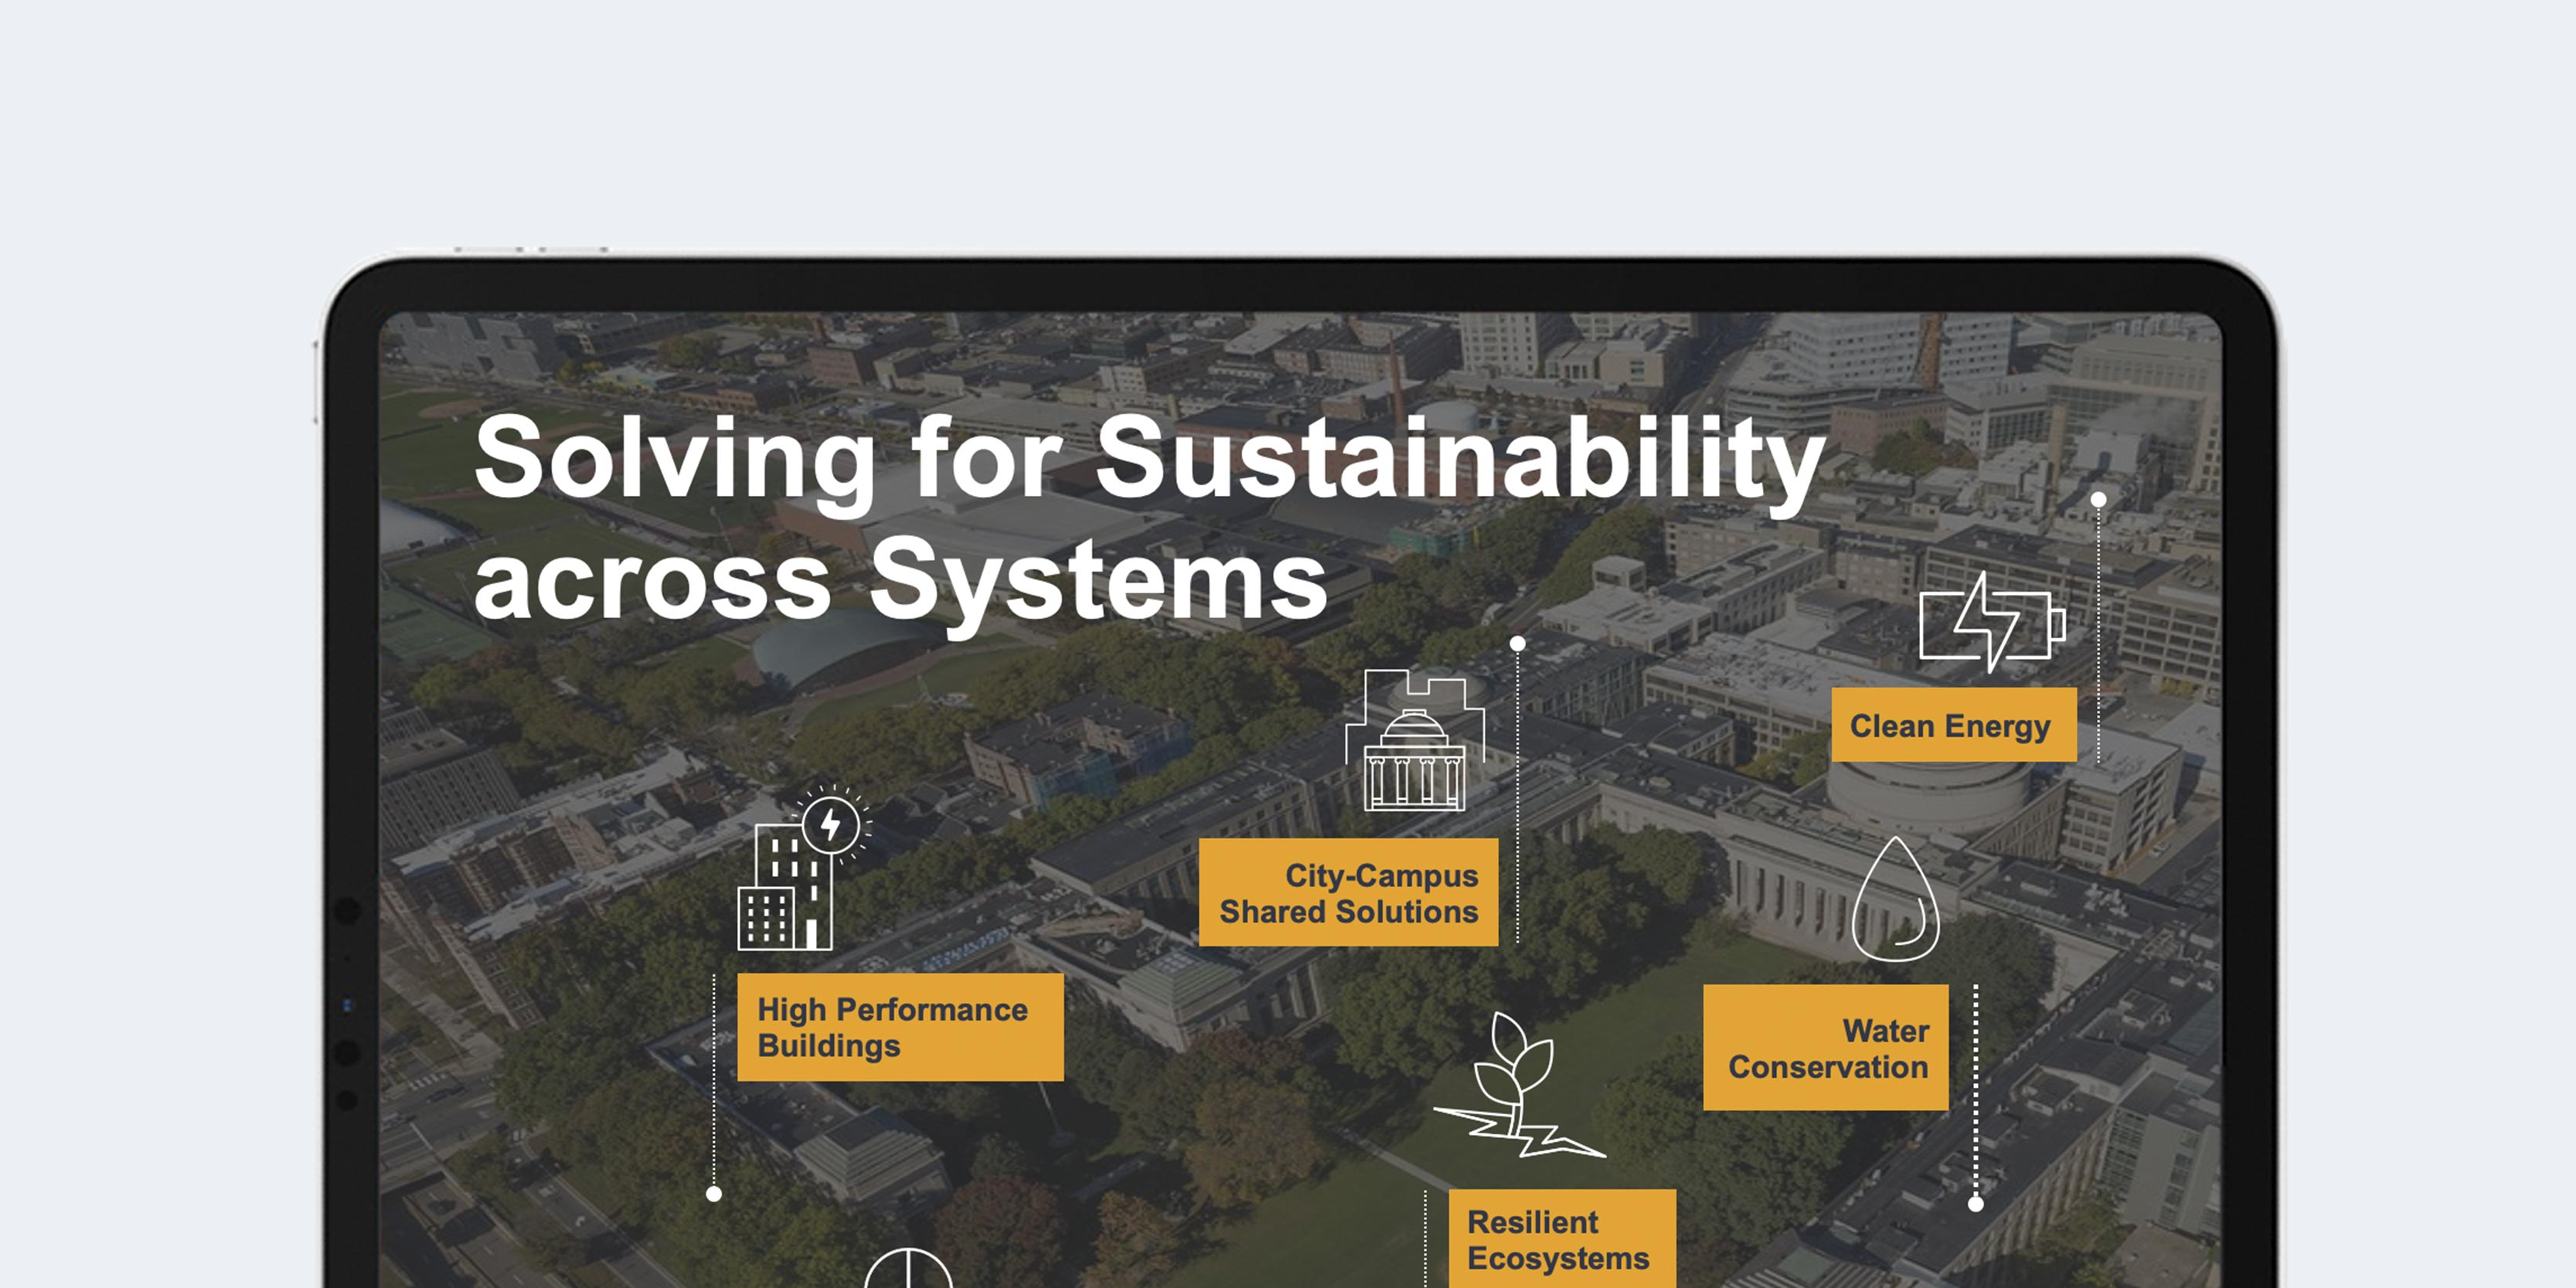 Solving for Sustainability infographic